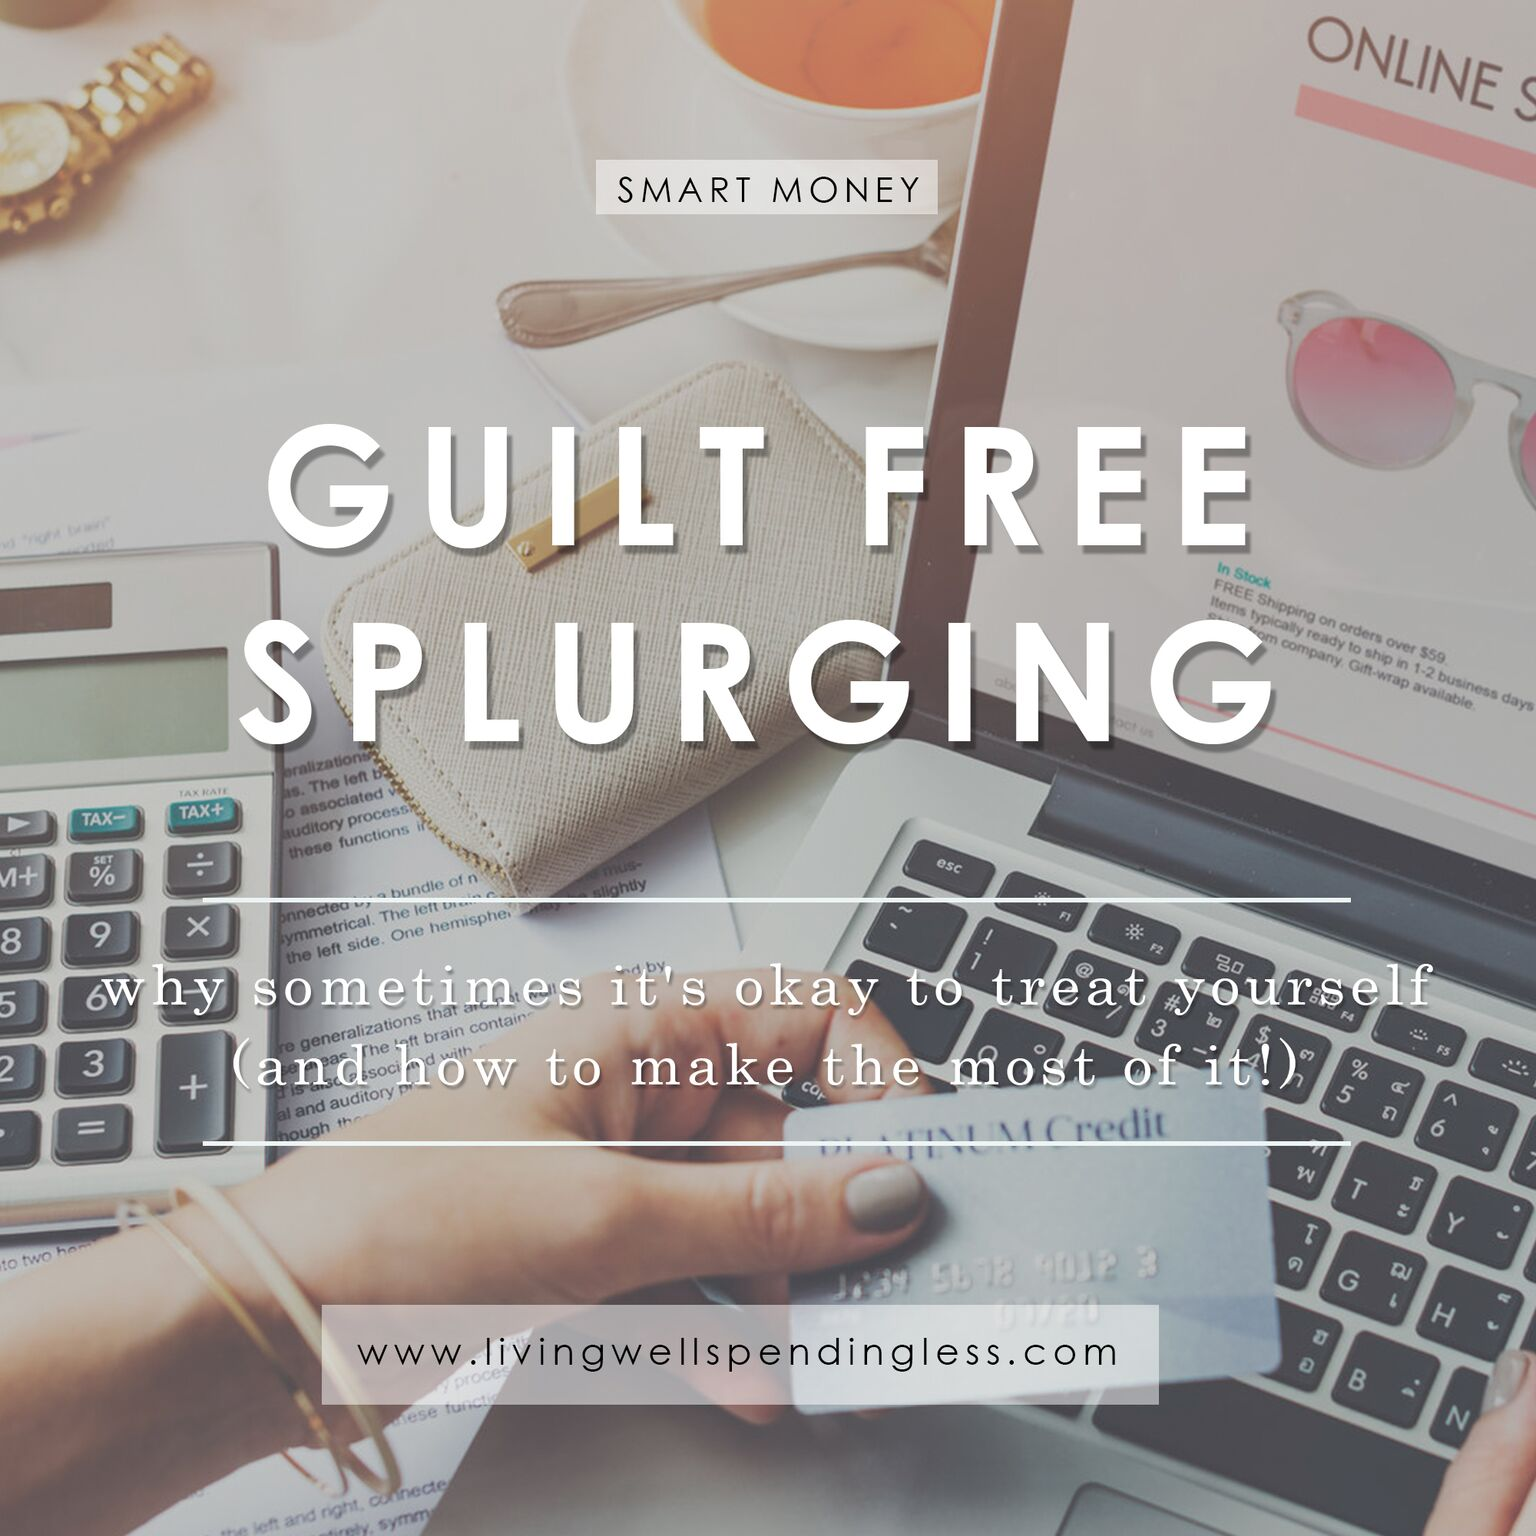 Guilt-Free Splurging | When it's Okay to Spend a Little More | Smart Money | How to Splurge Without Feeling Guilty